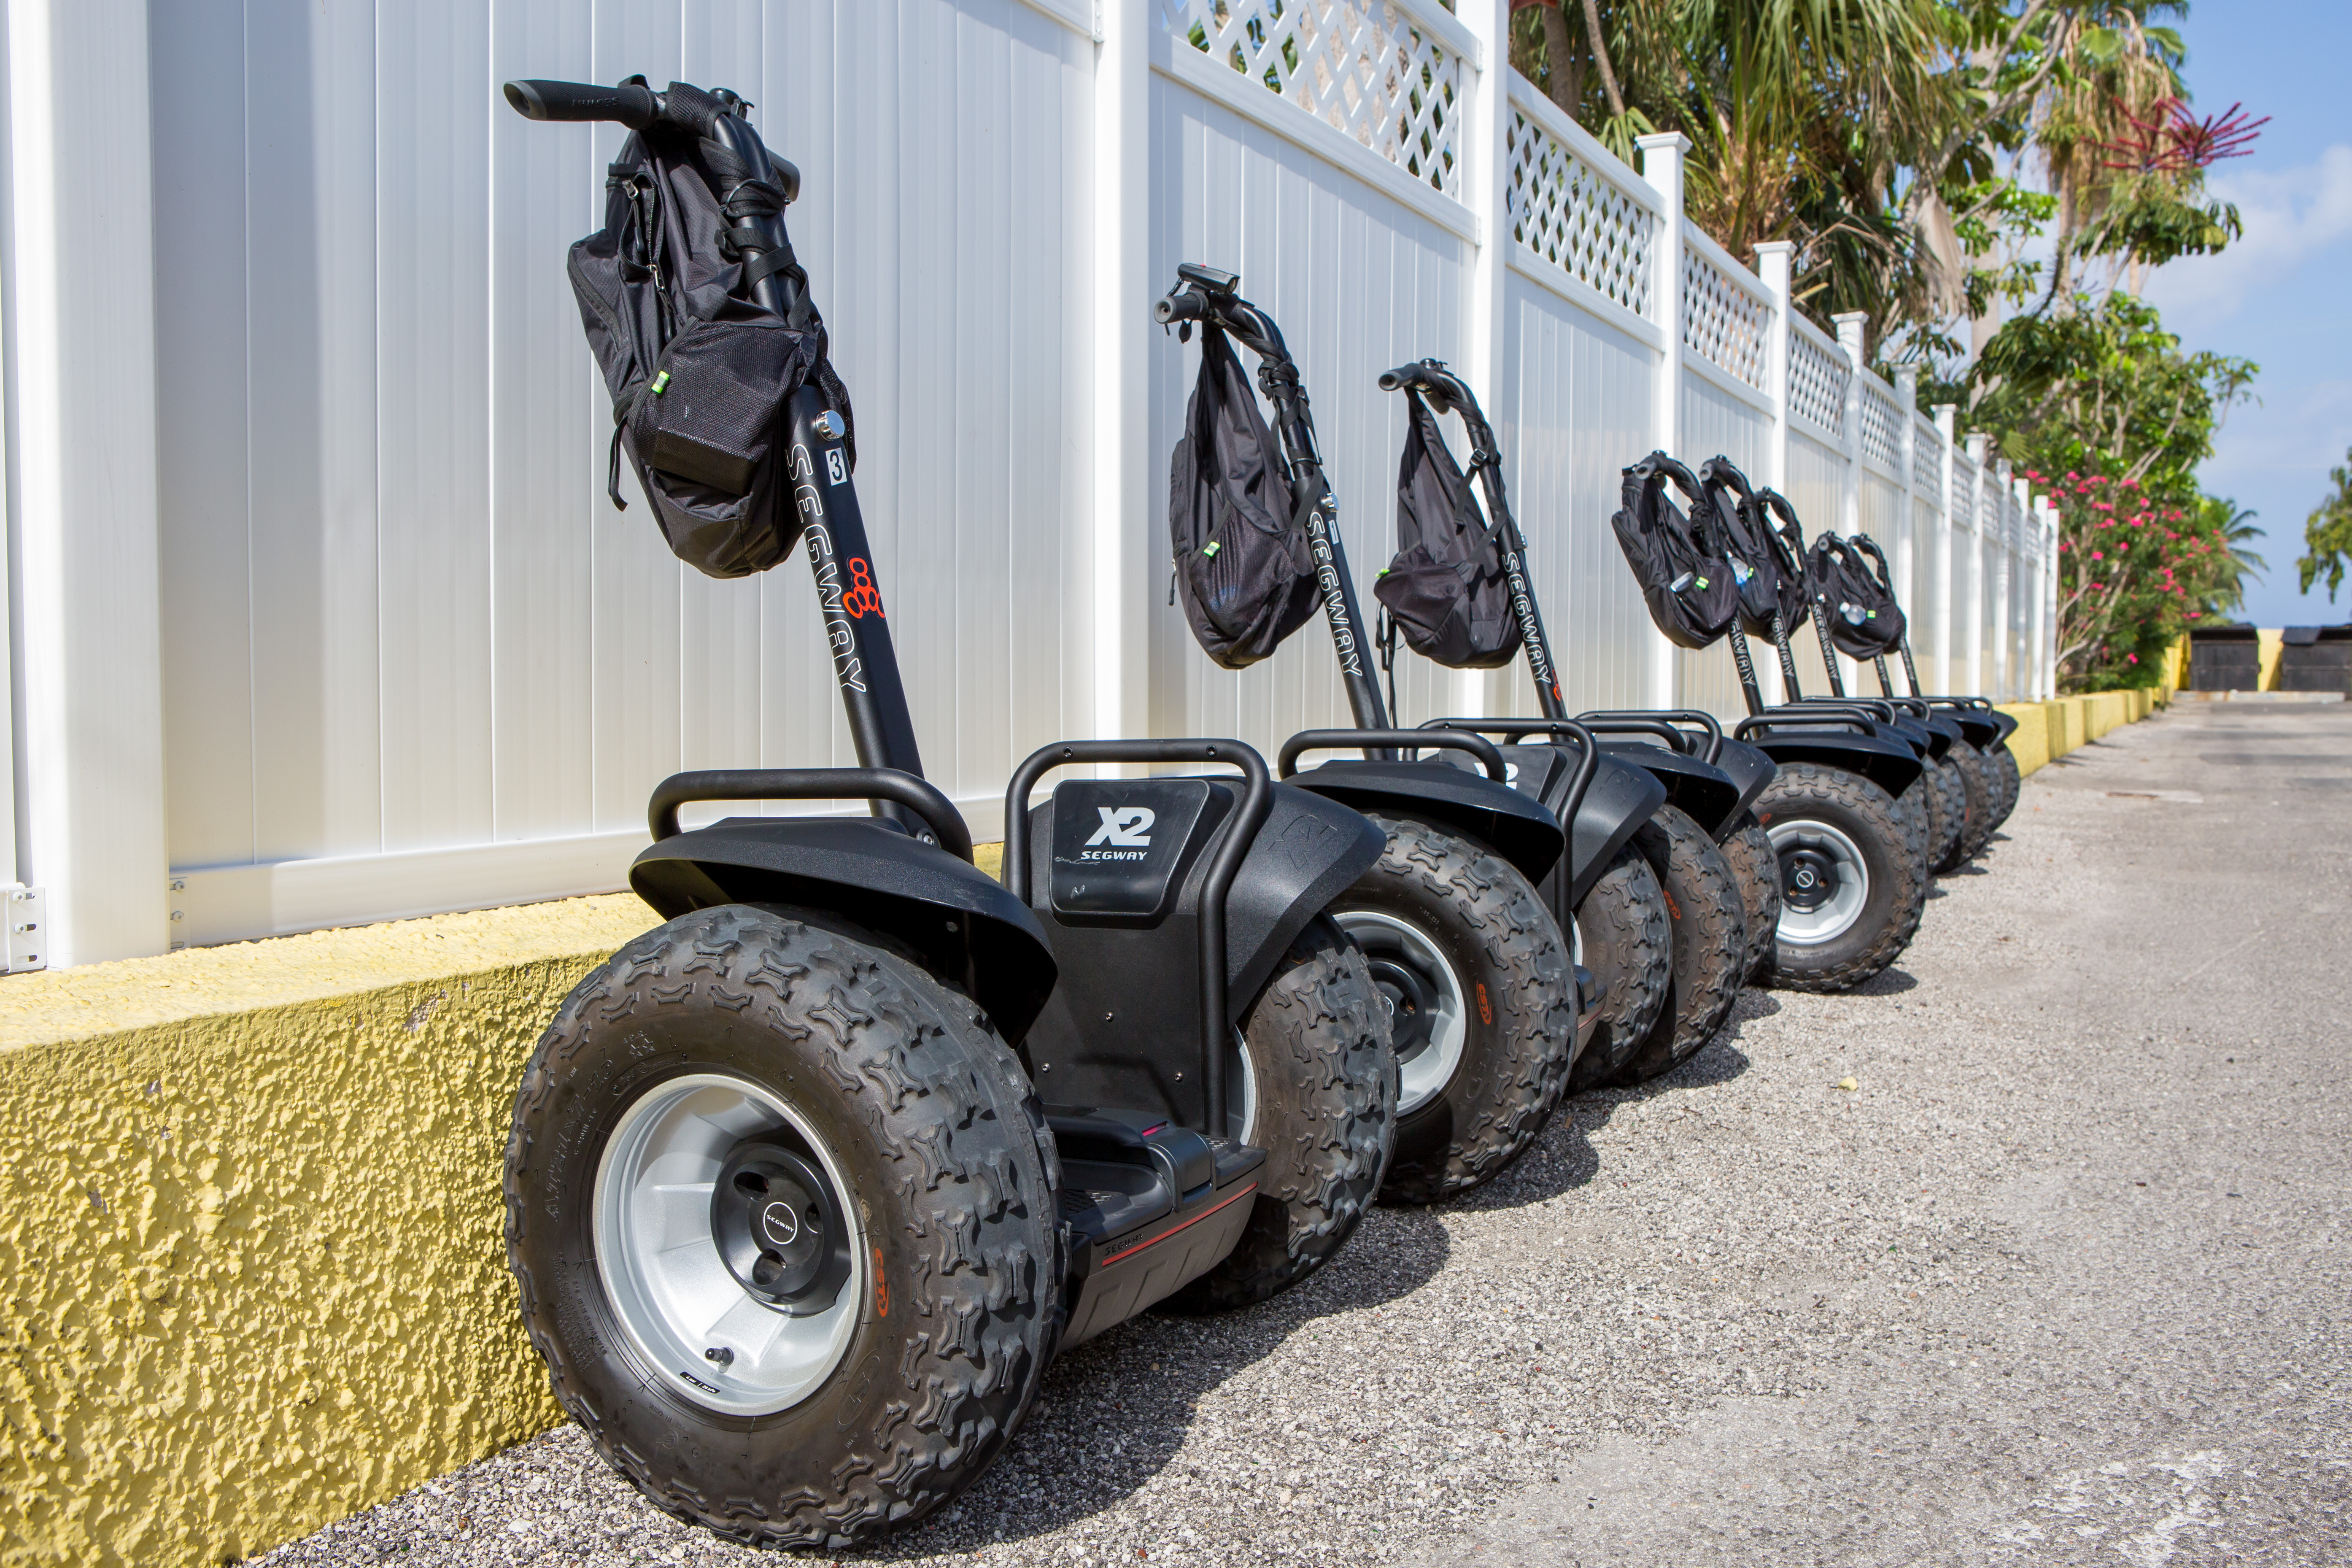 Cayman Segways ready to go